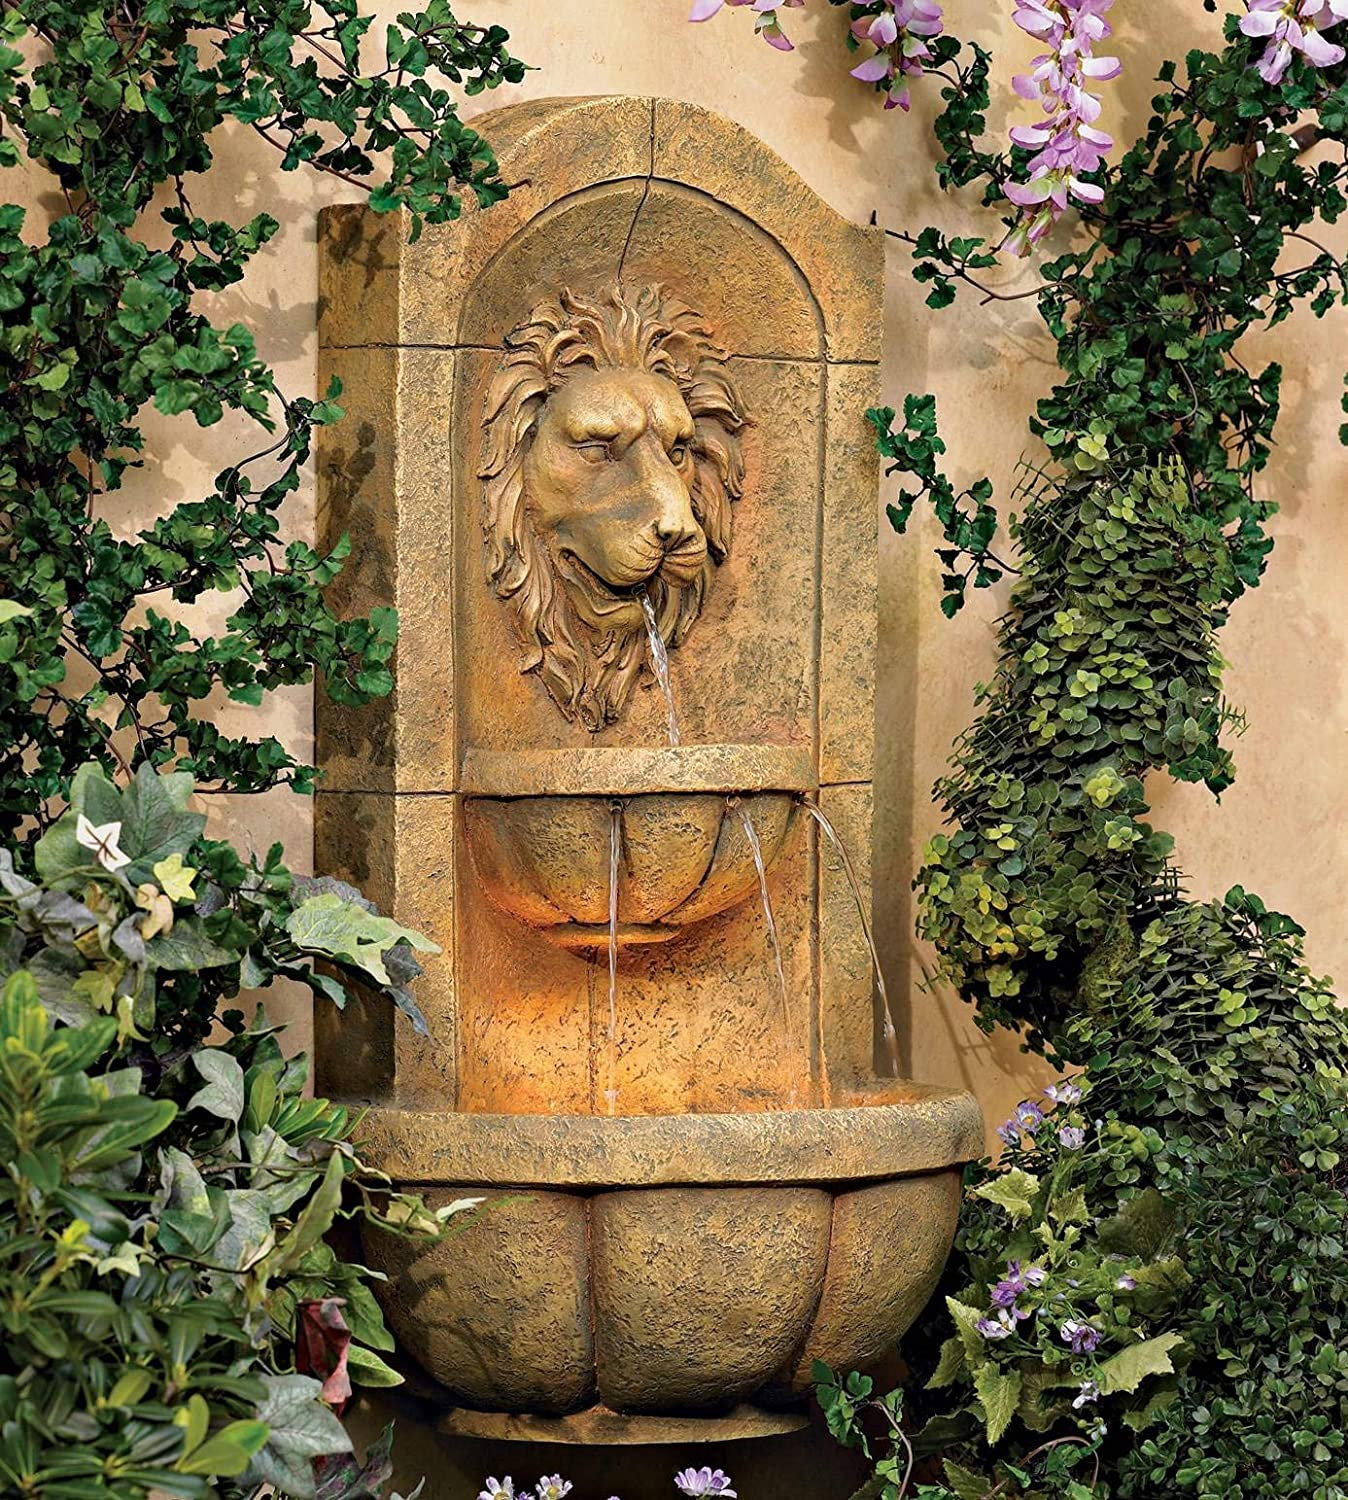 John Timberland Lion Head Roman Outdoor Wall Water Fountain with Light LED 29 1/2